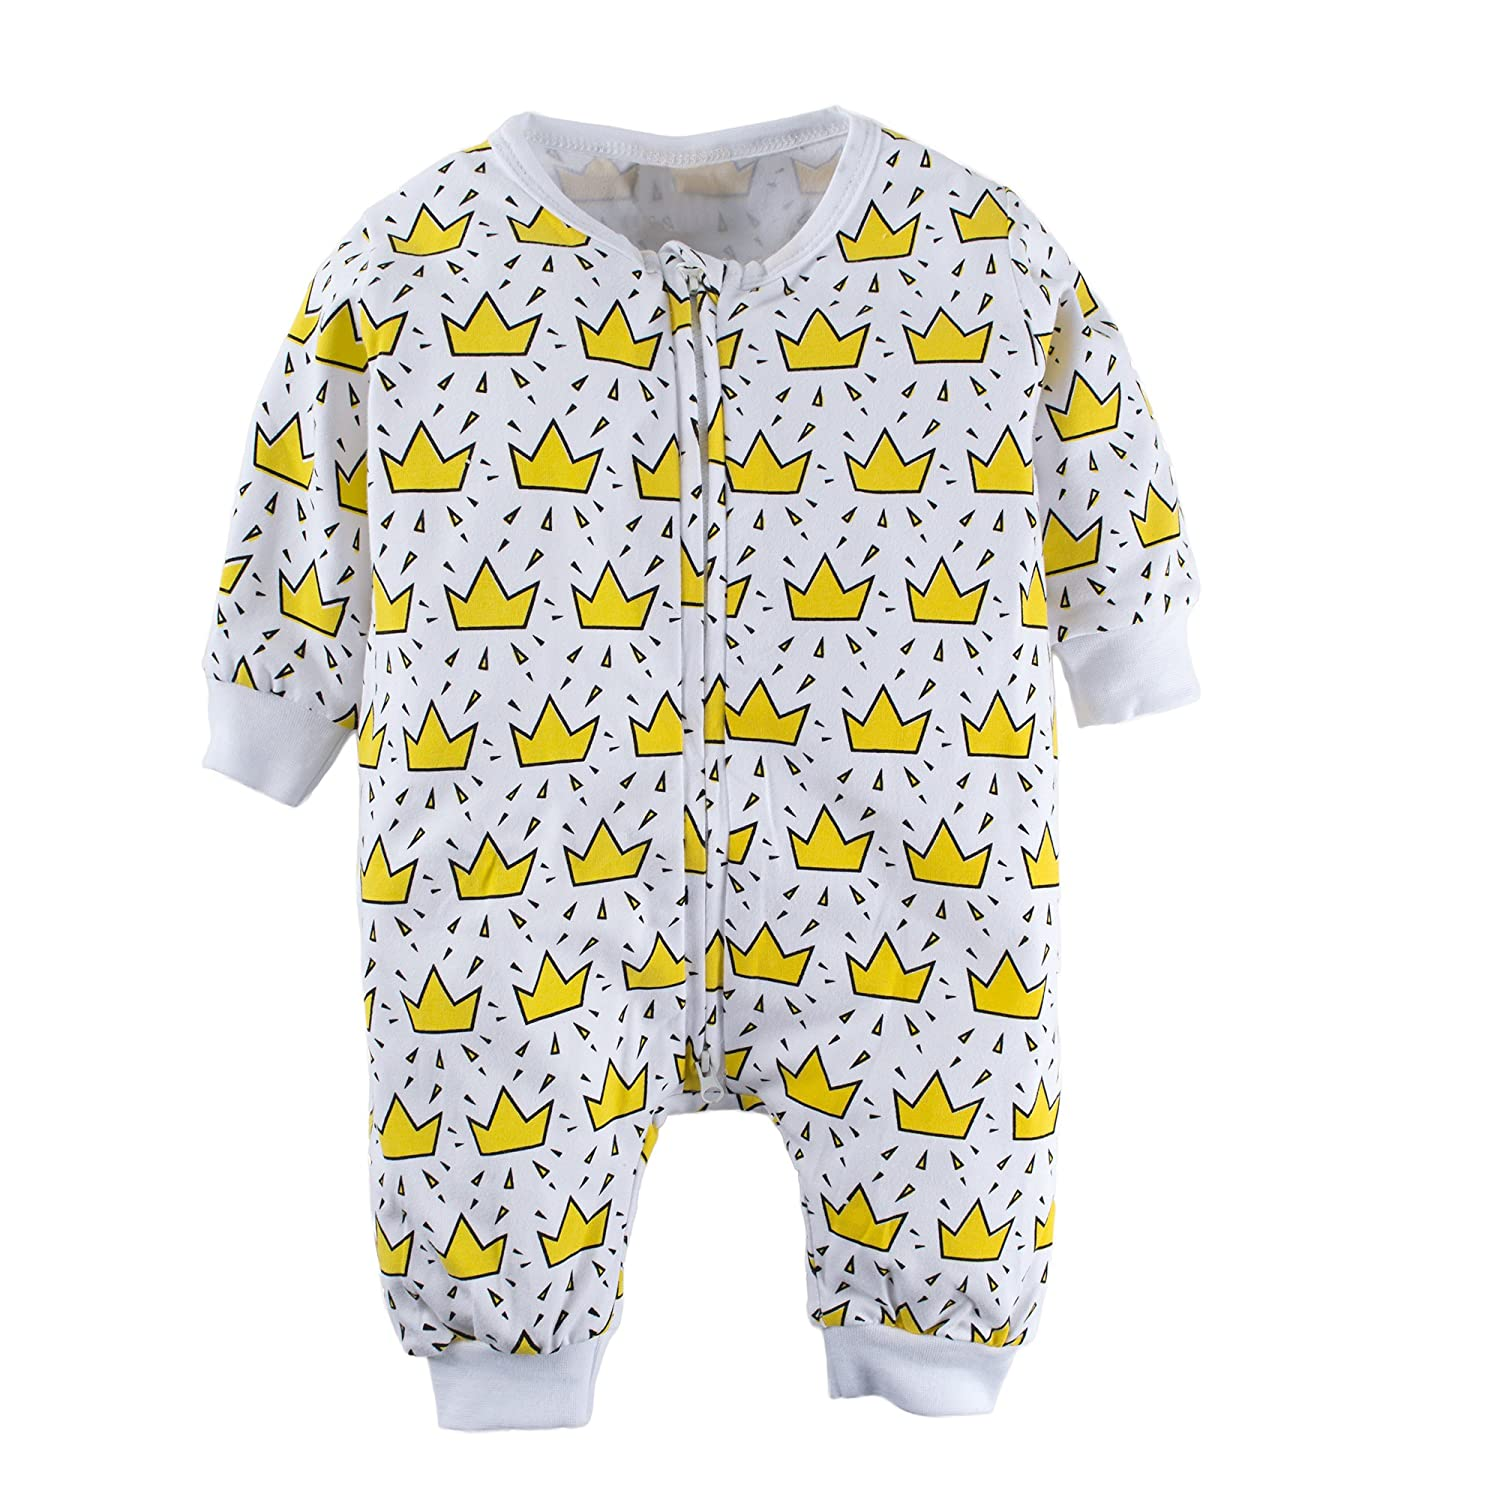 BIG ELEPHANT Baby Boys'and Girls' 1 Piece Graphic Print Long Sleeve Romper Pajama L60